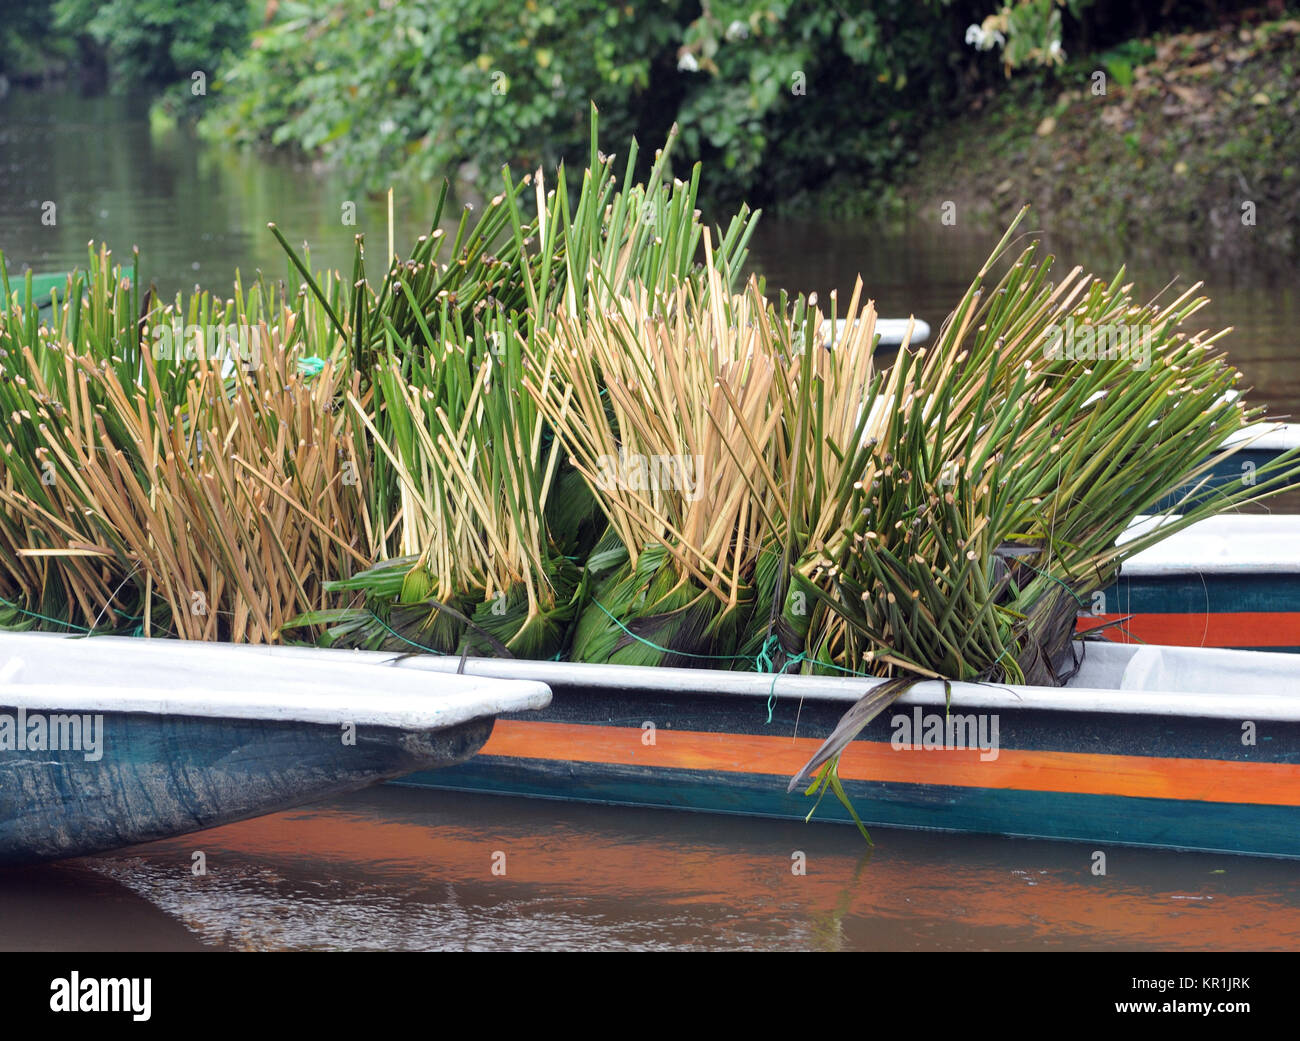 Trimmed plants of Carludovica palmata in a canoe ready for transport and transplanting. These plants are used for - Stock Image